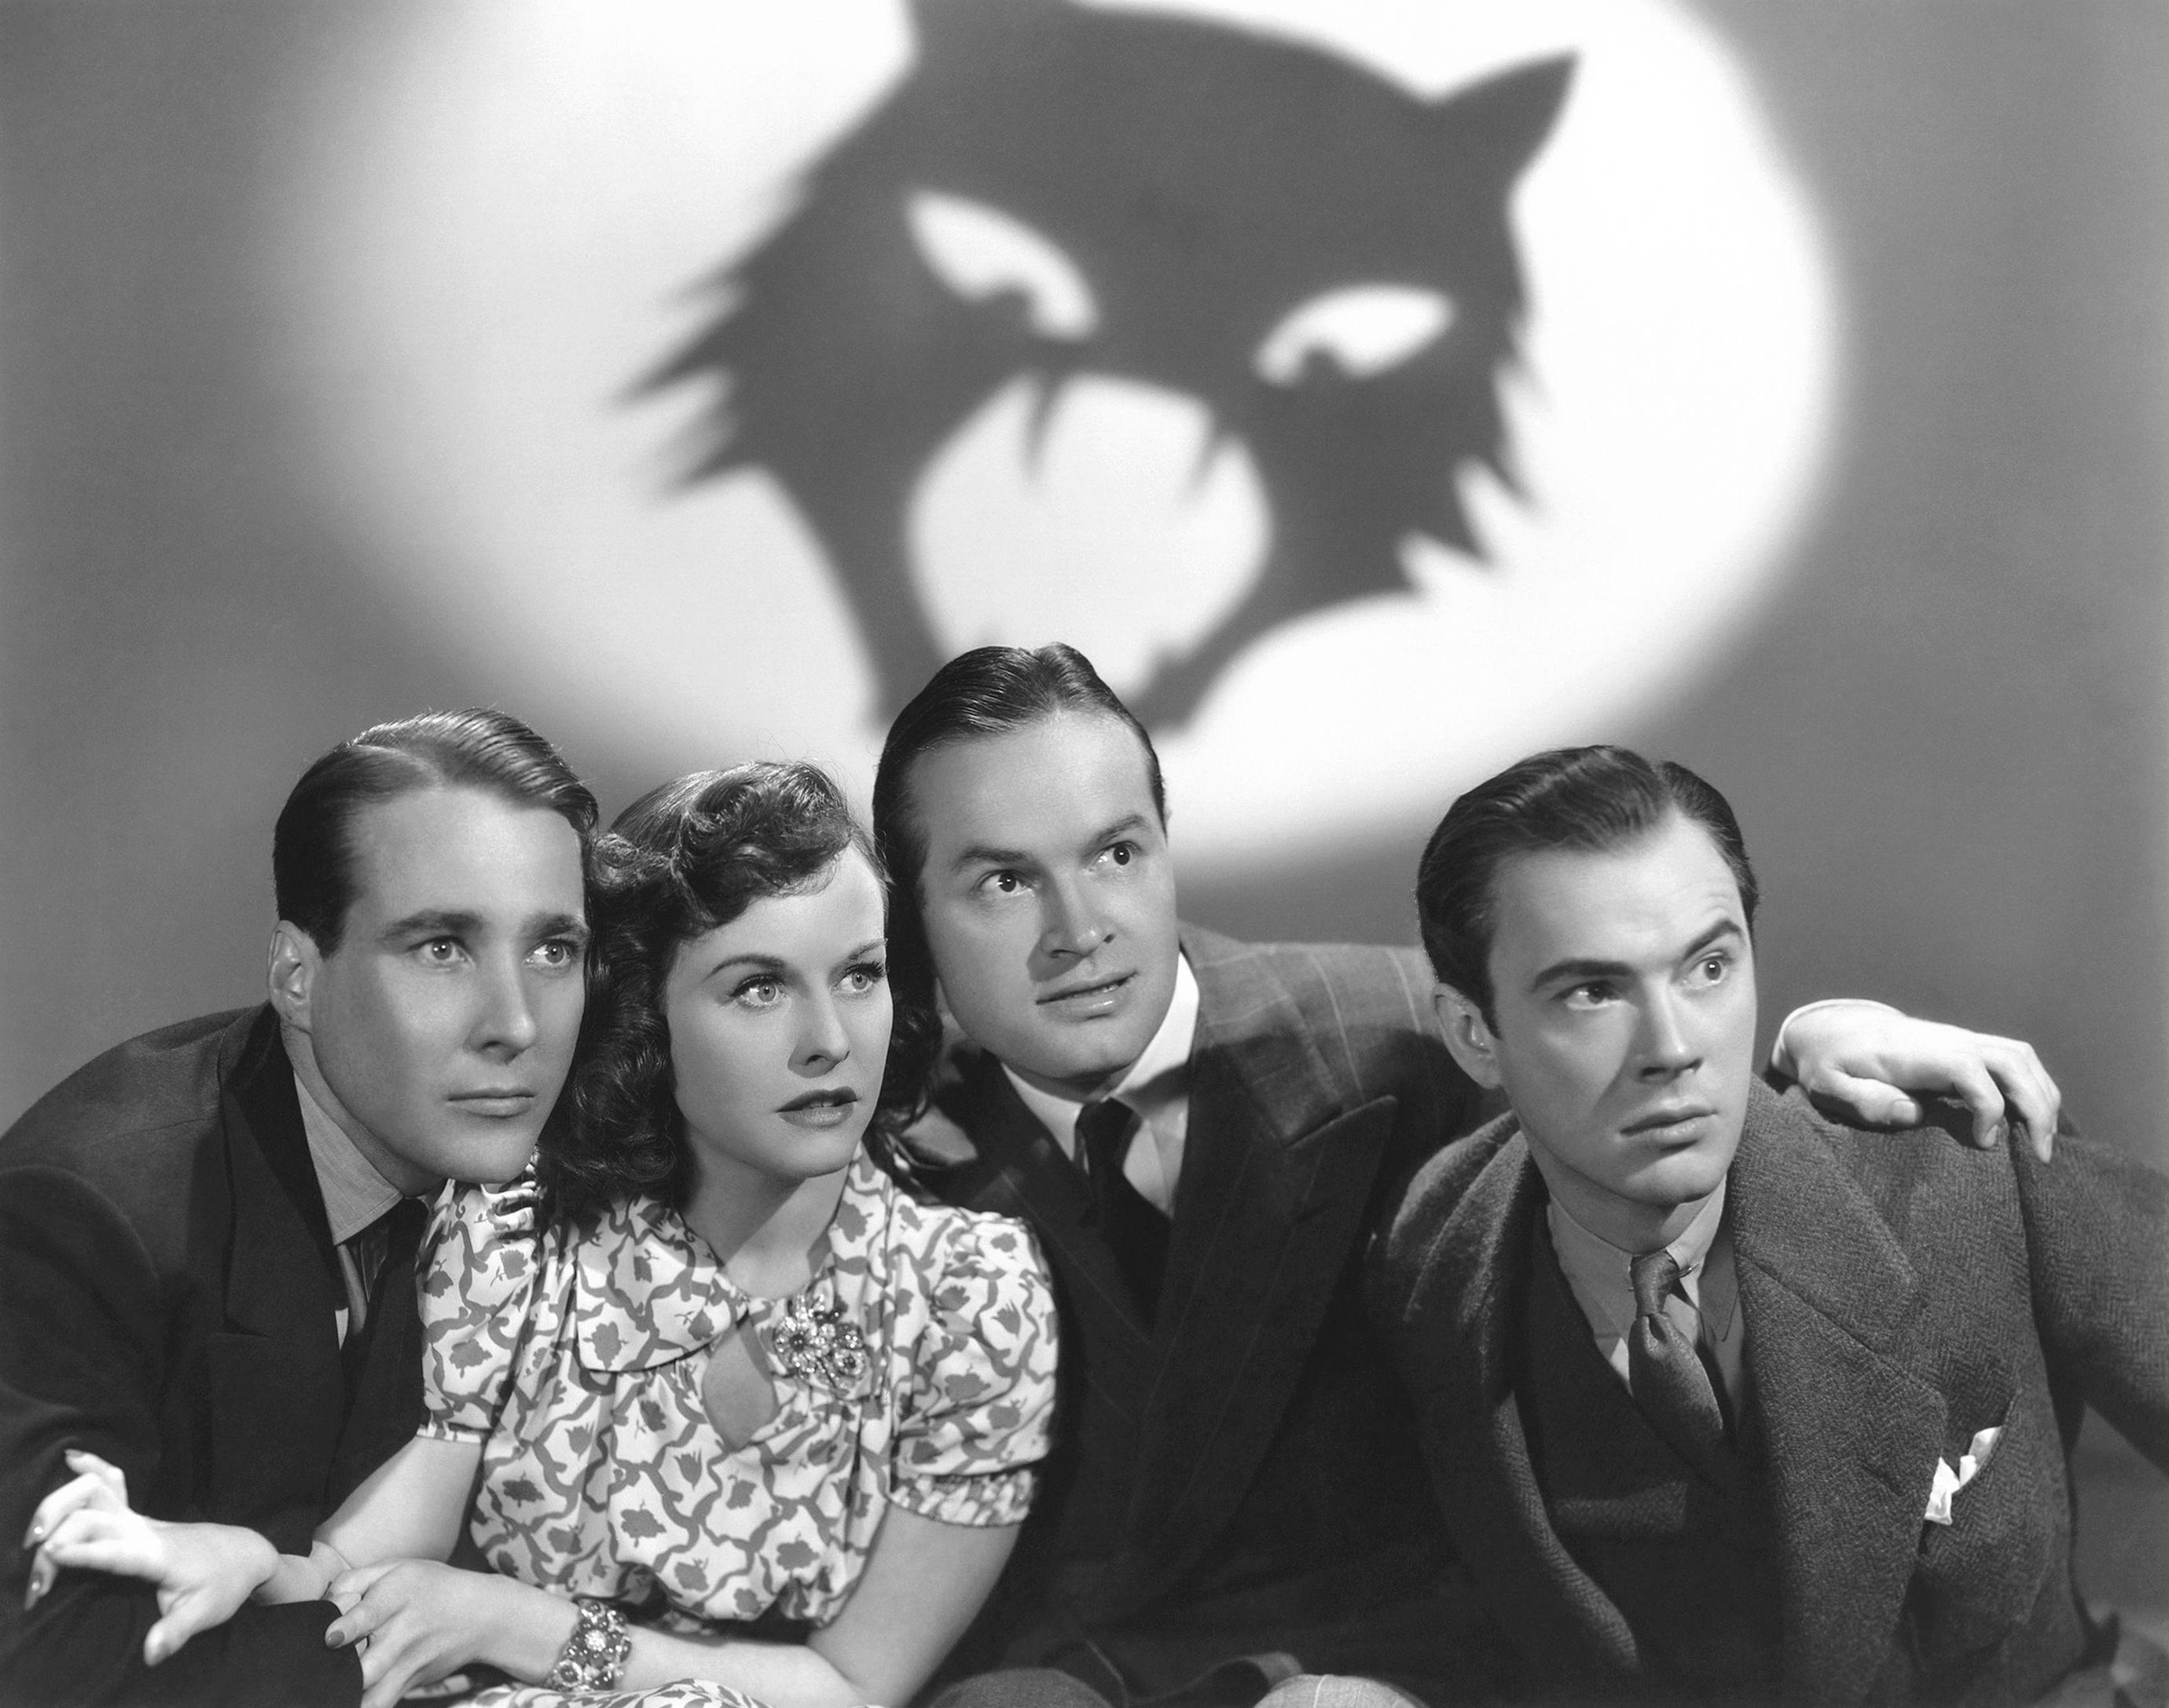 Bob Hope in The Cat and the Canary with (L to R) Douglass Montgomery, Paulette Goddard, Bob Hope, John Beal  (Courtesy of Sarah and Michelle)